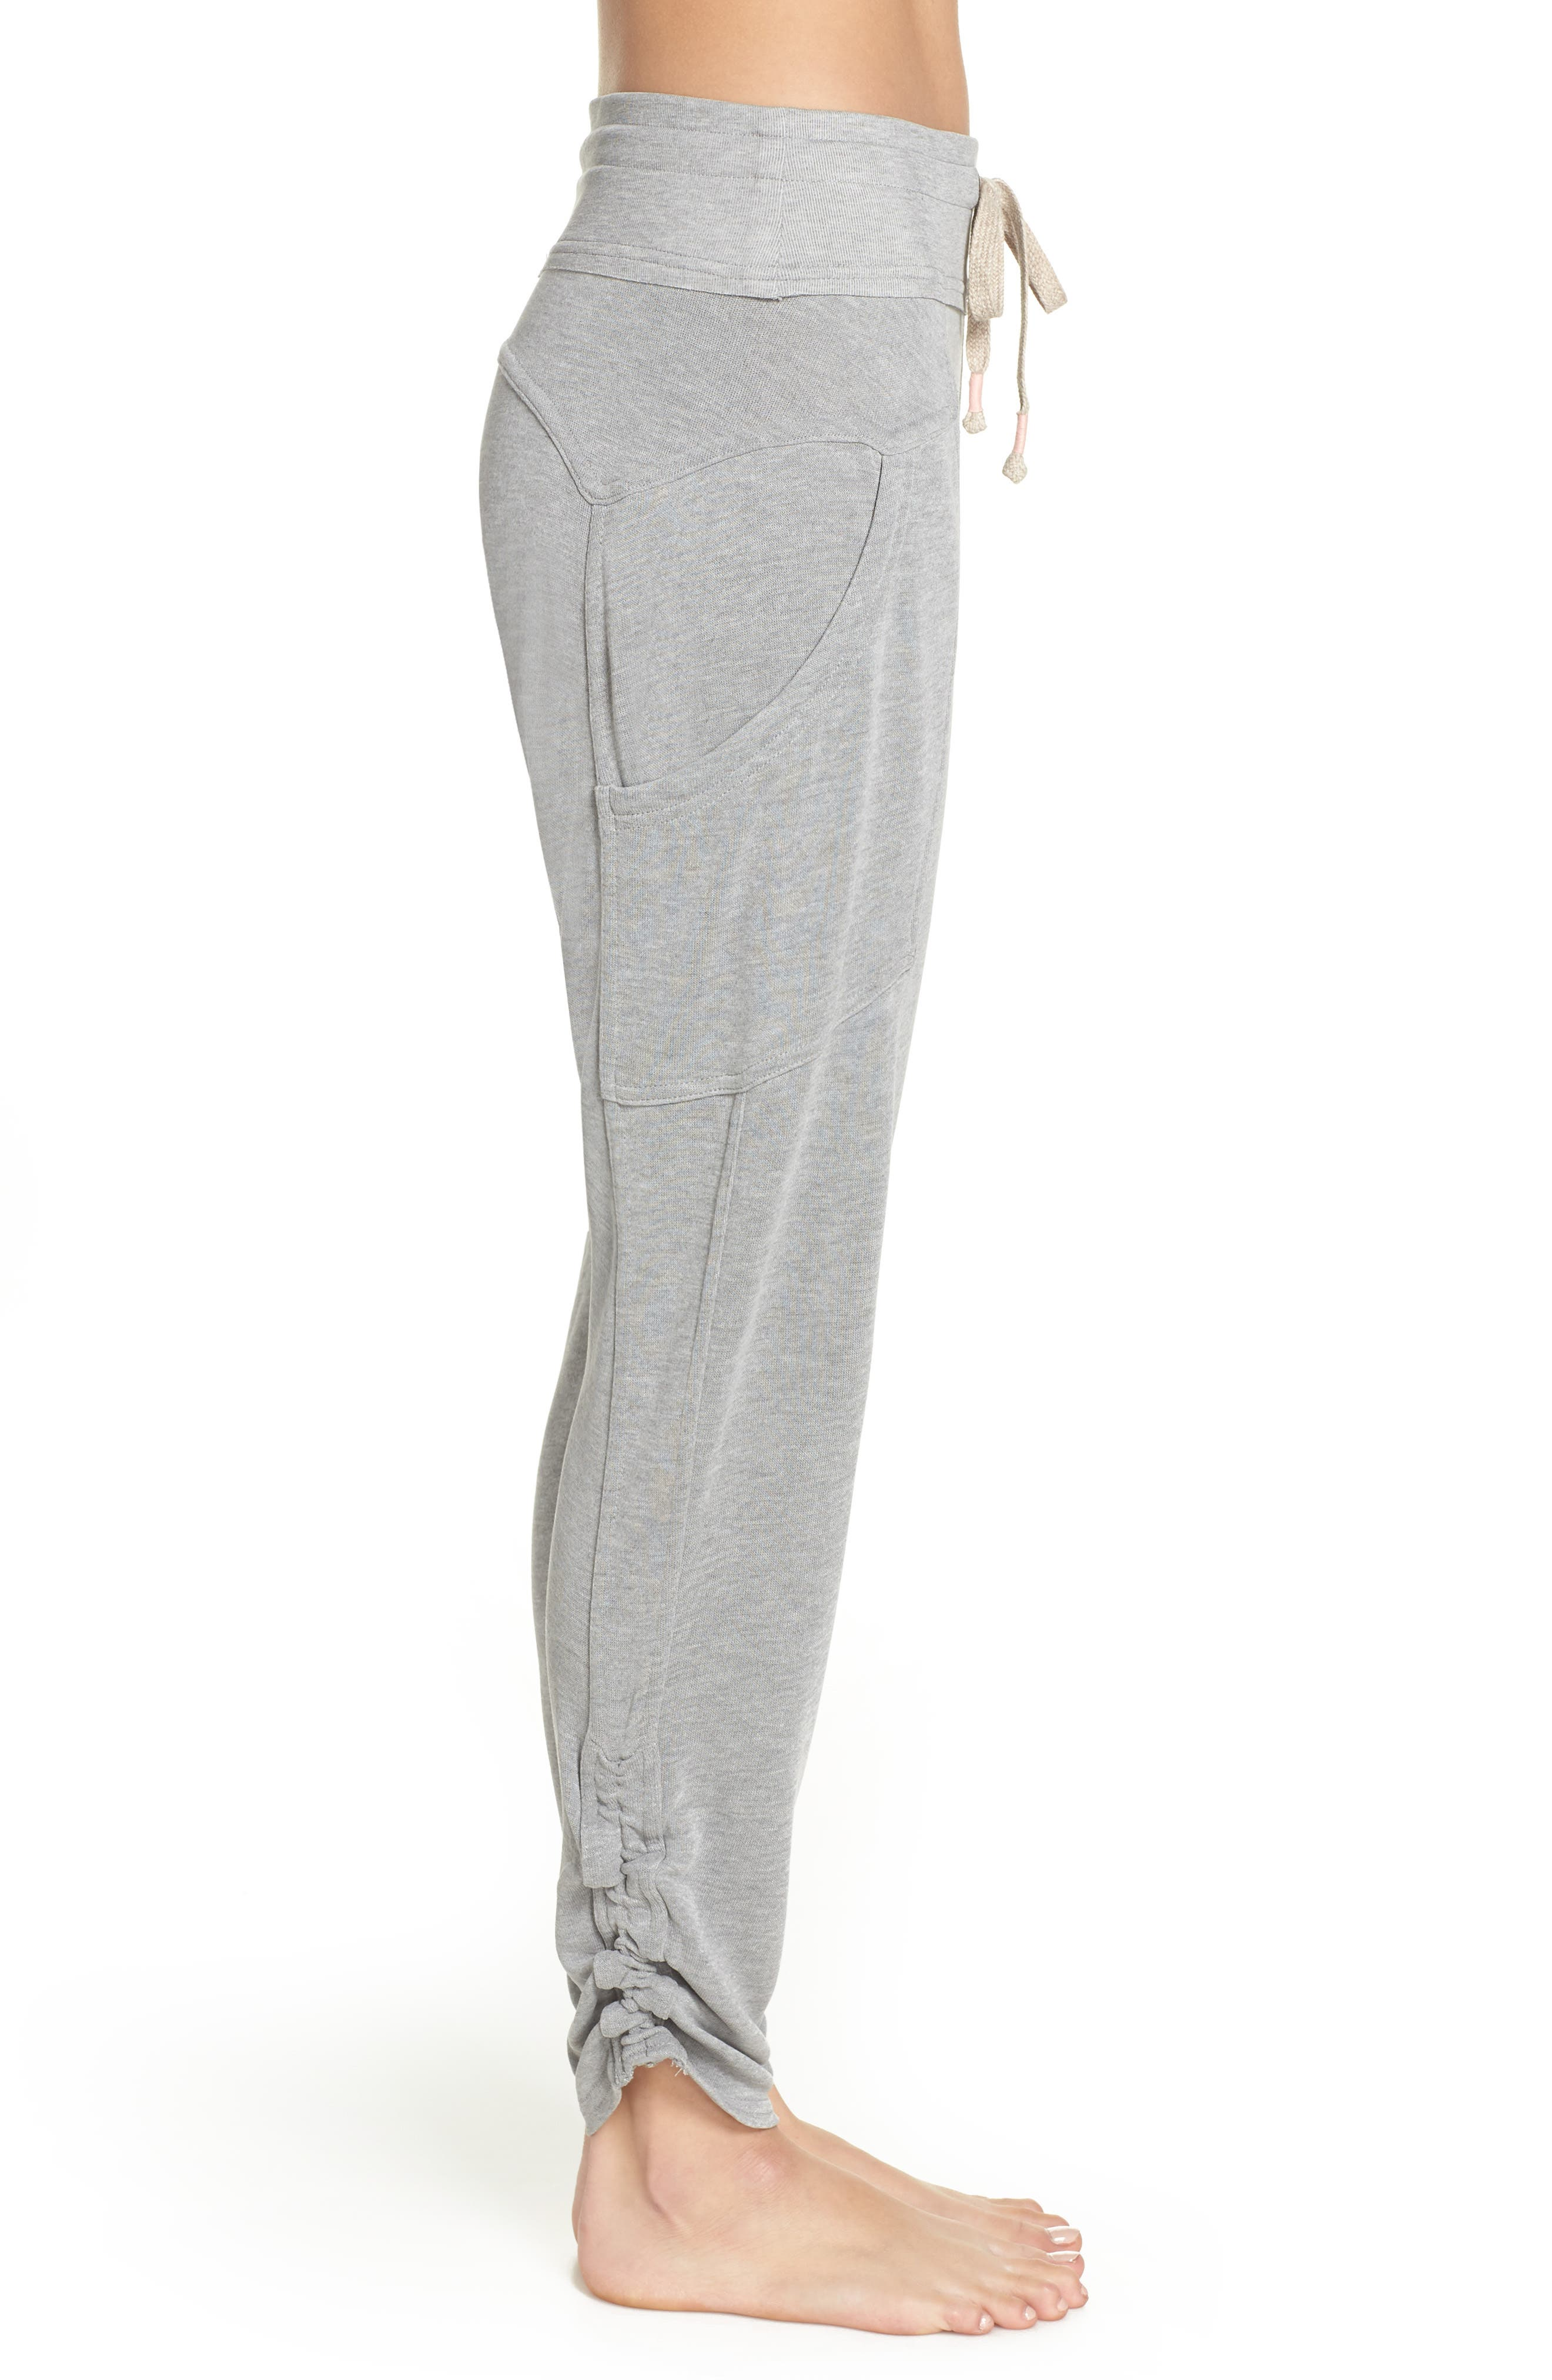 Free People FP Movement Ready Go Jogger Pants,                             Alternate thumbnail 3, color,                             GREY COMBO